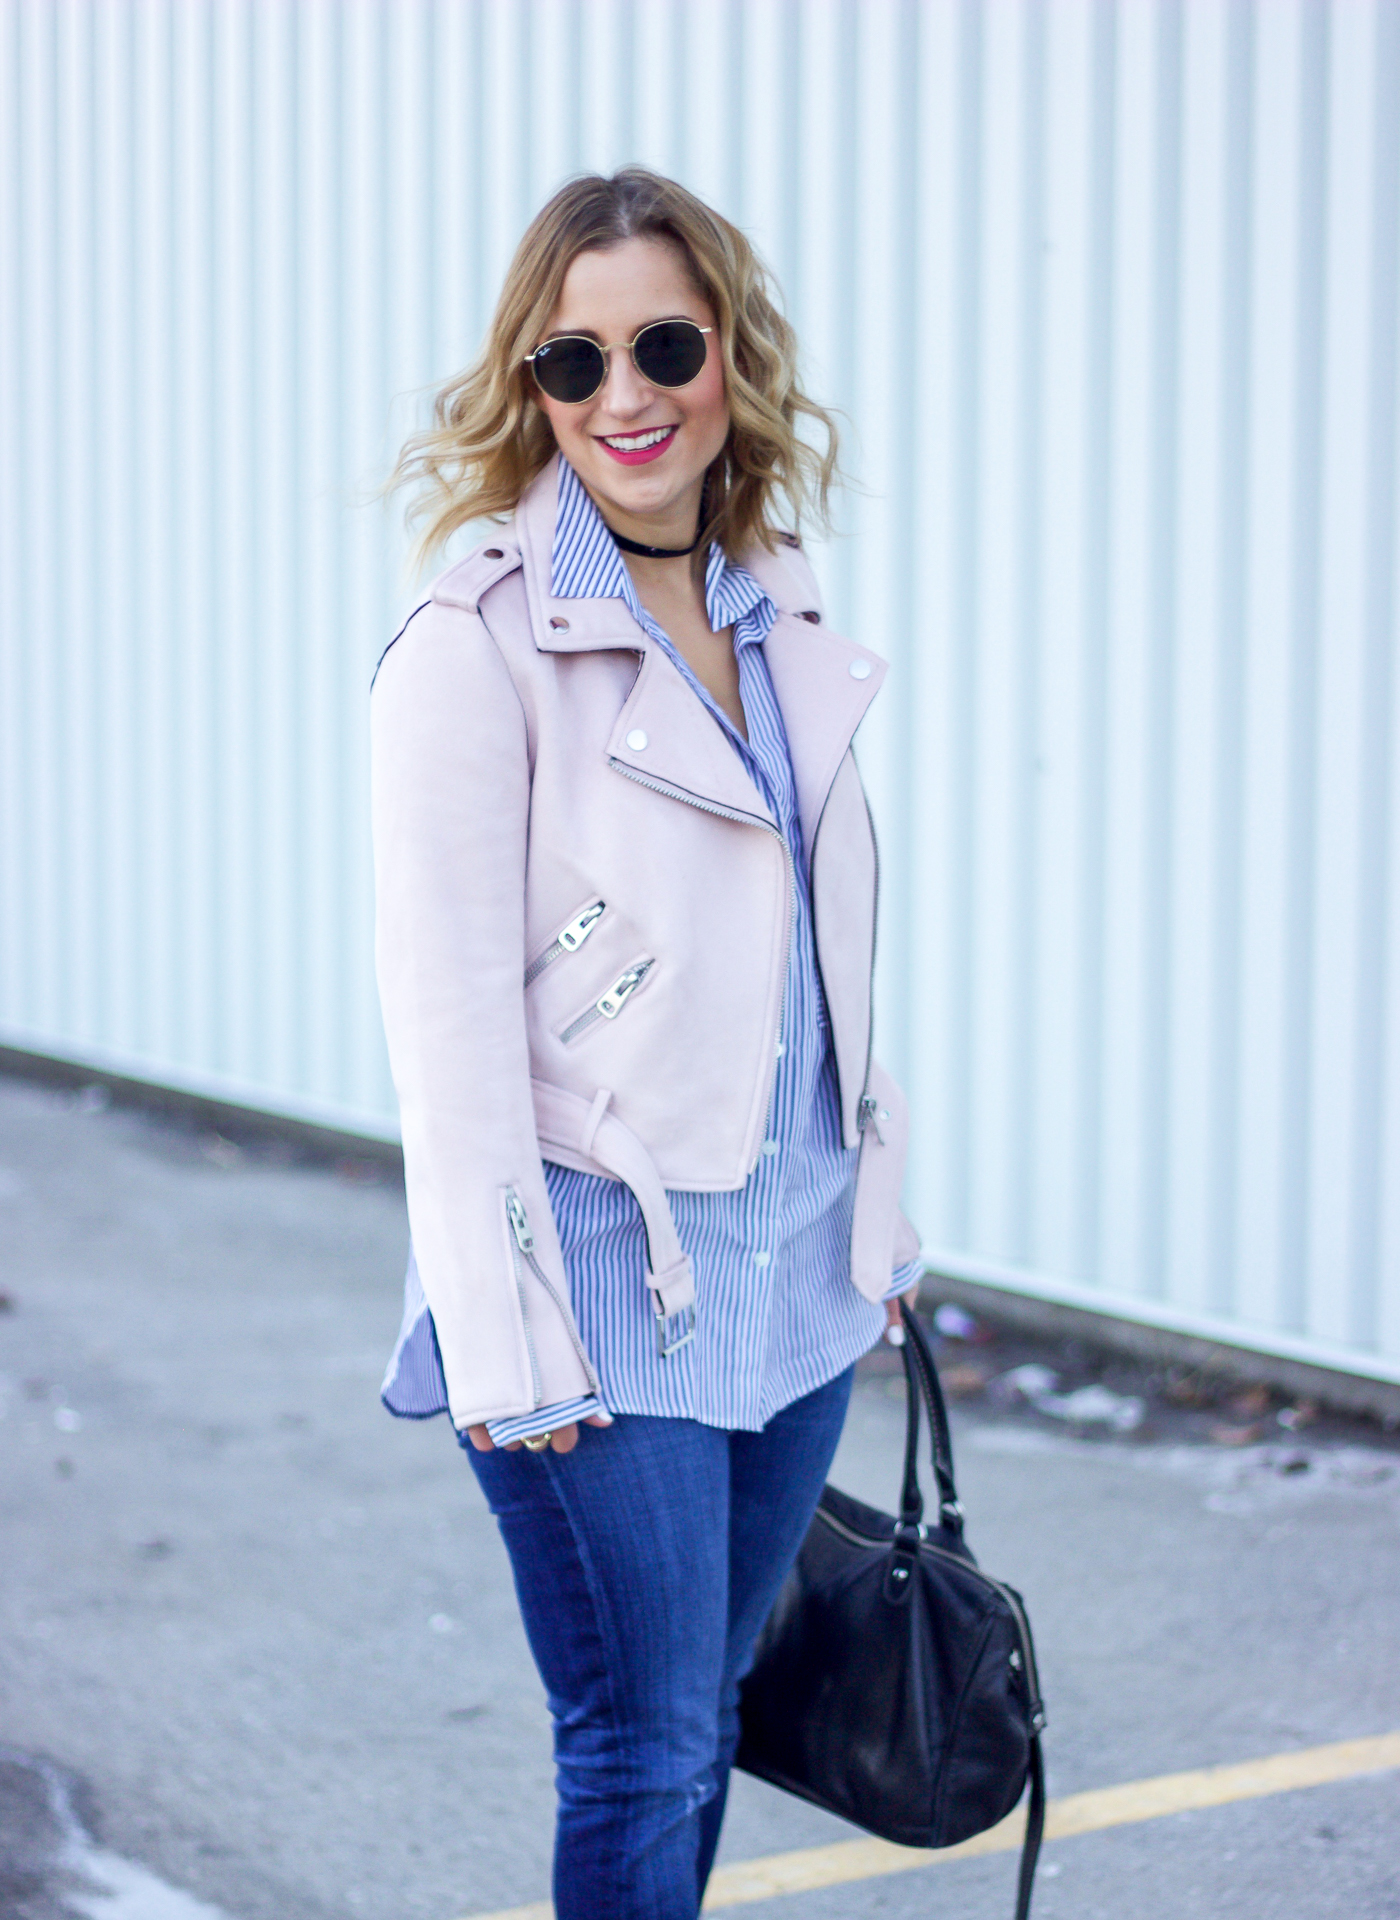 How to wear a pink motorcycle jacket, as seen on a fashion blogger